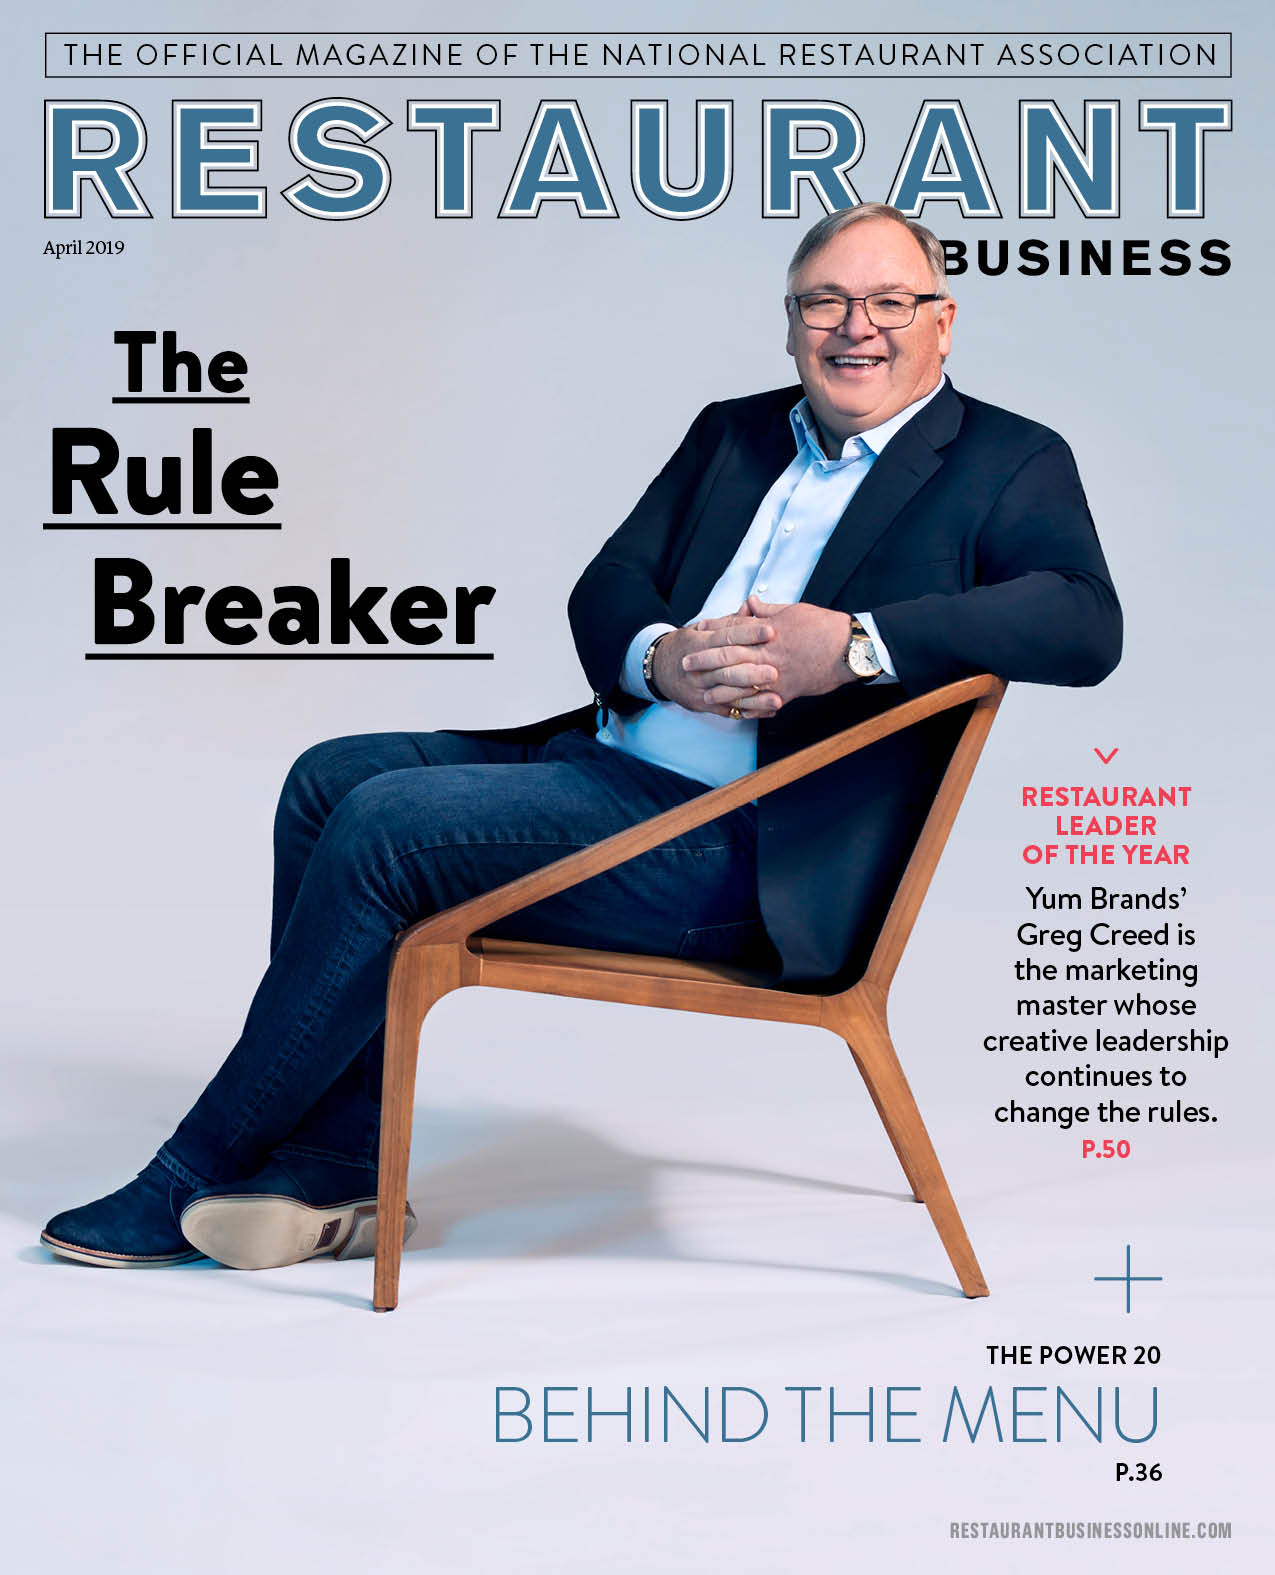 Restaurant Business Magazine April 2019 Issue